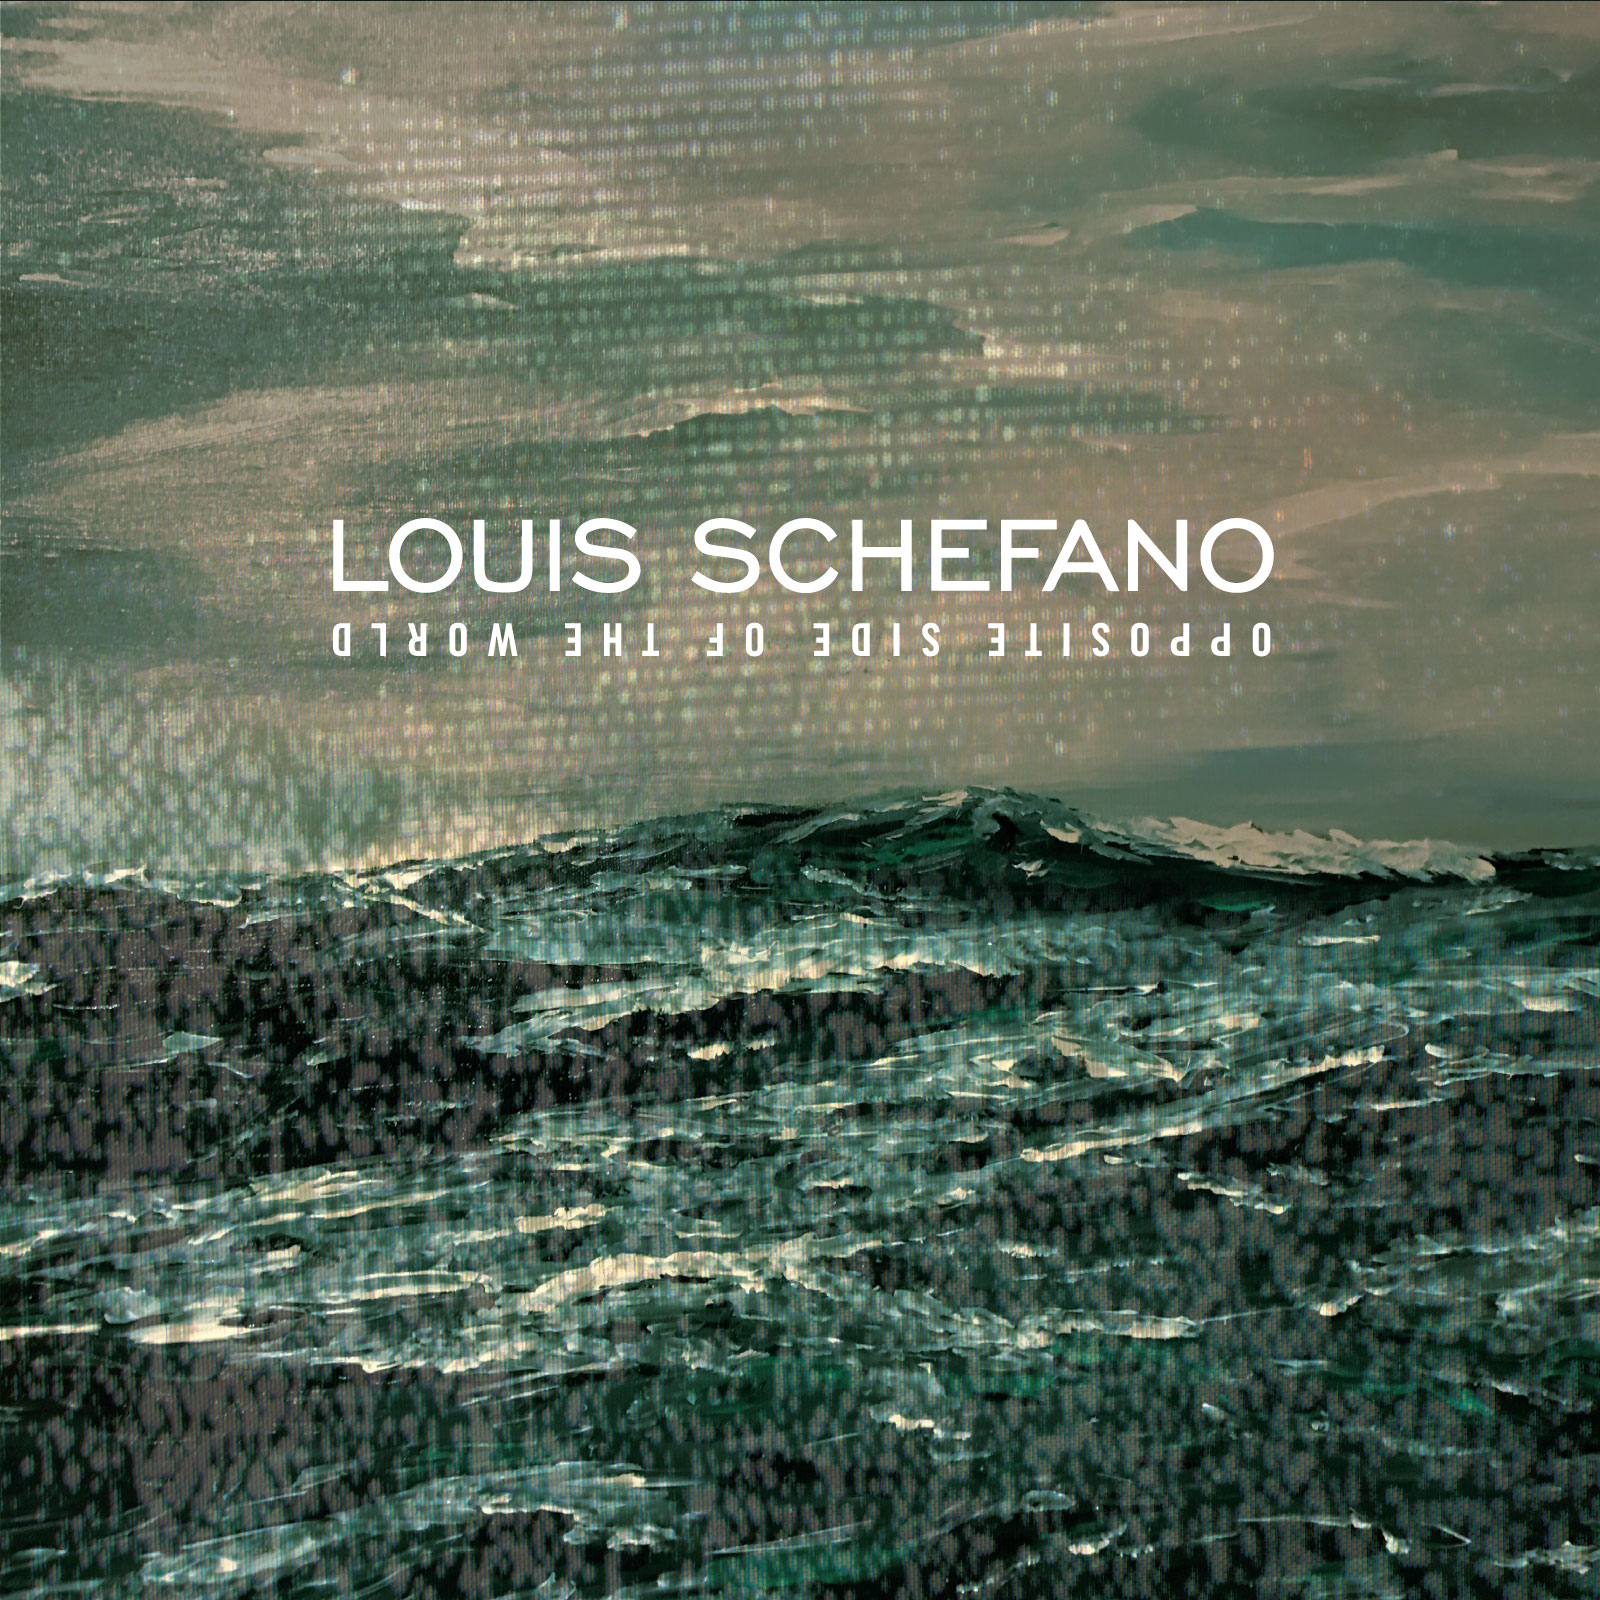 Louis-Schefano – Opposite Side of the World – ALBUM-ART – LOWRES.jpg